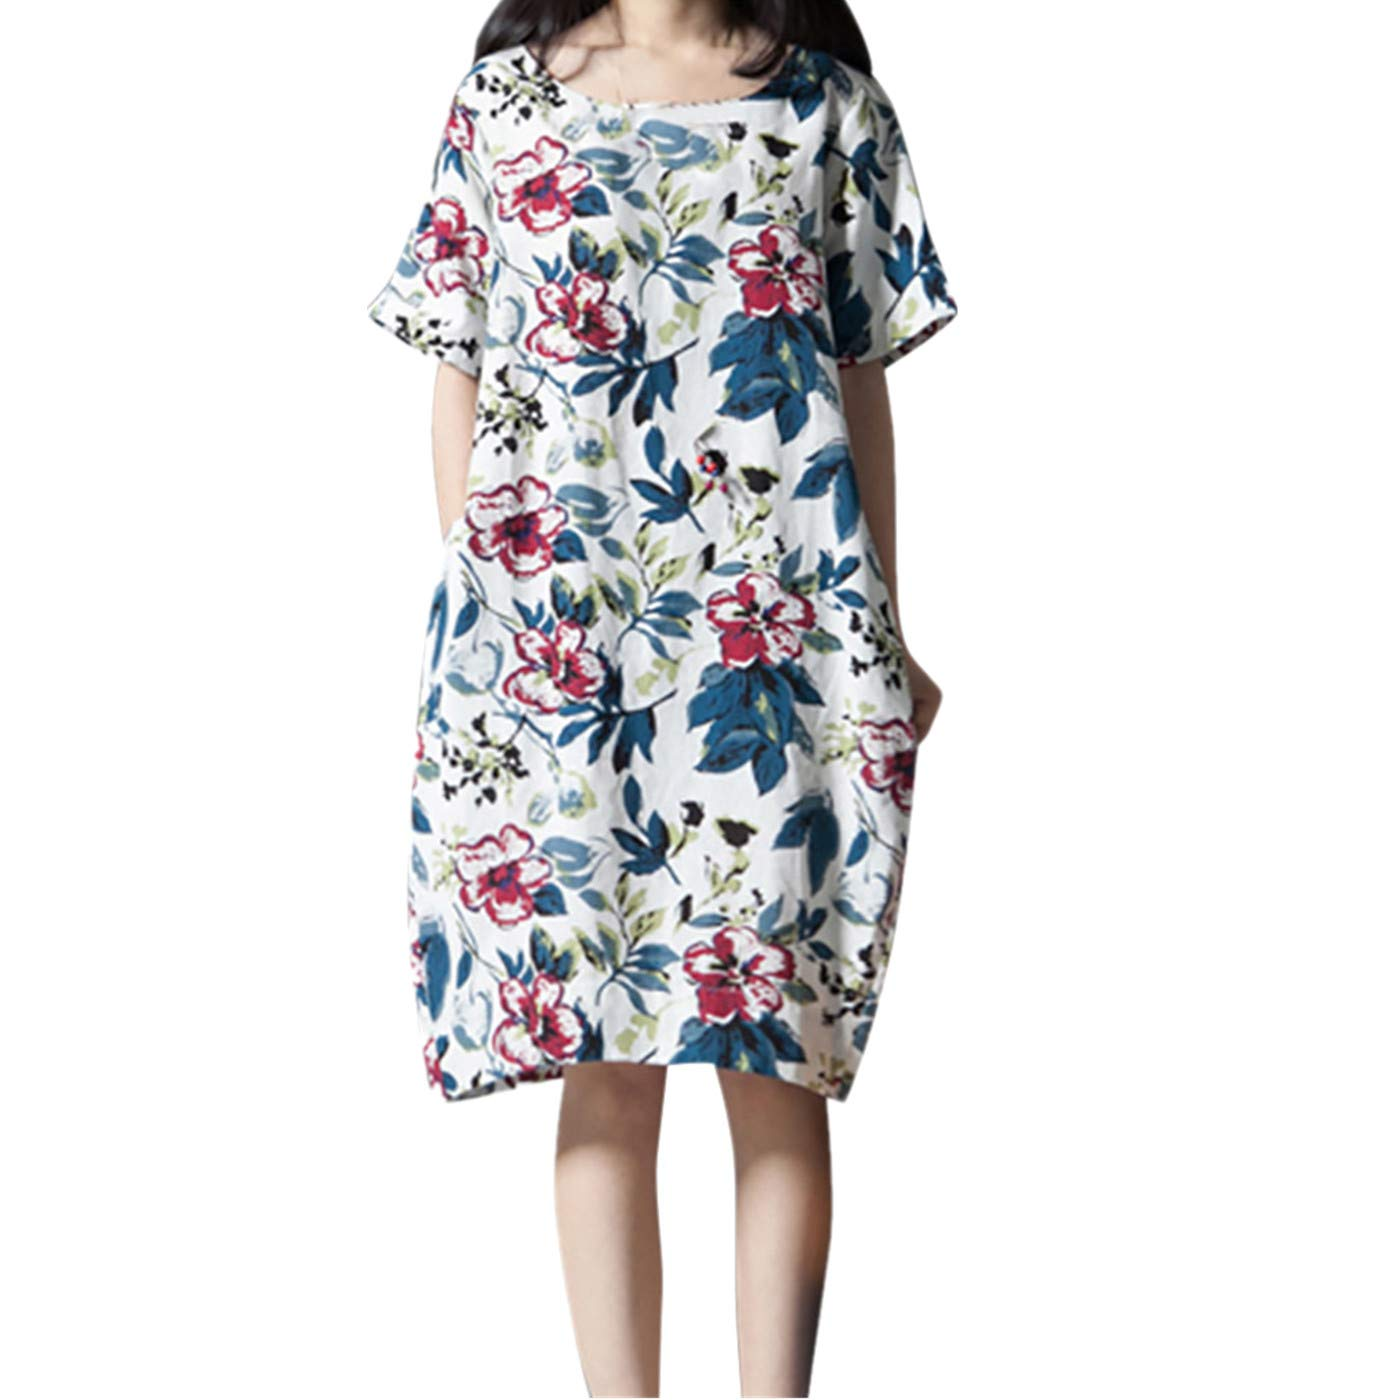 PASATO M-5XL Plus Size Women's Casual Short Sleeve O-Neck Floral Print Cotton Dress With Pockets T-Shirt Dress(White,M=US:S) by PASATO Dress (Image #1)